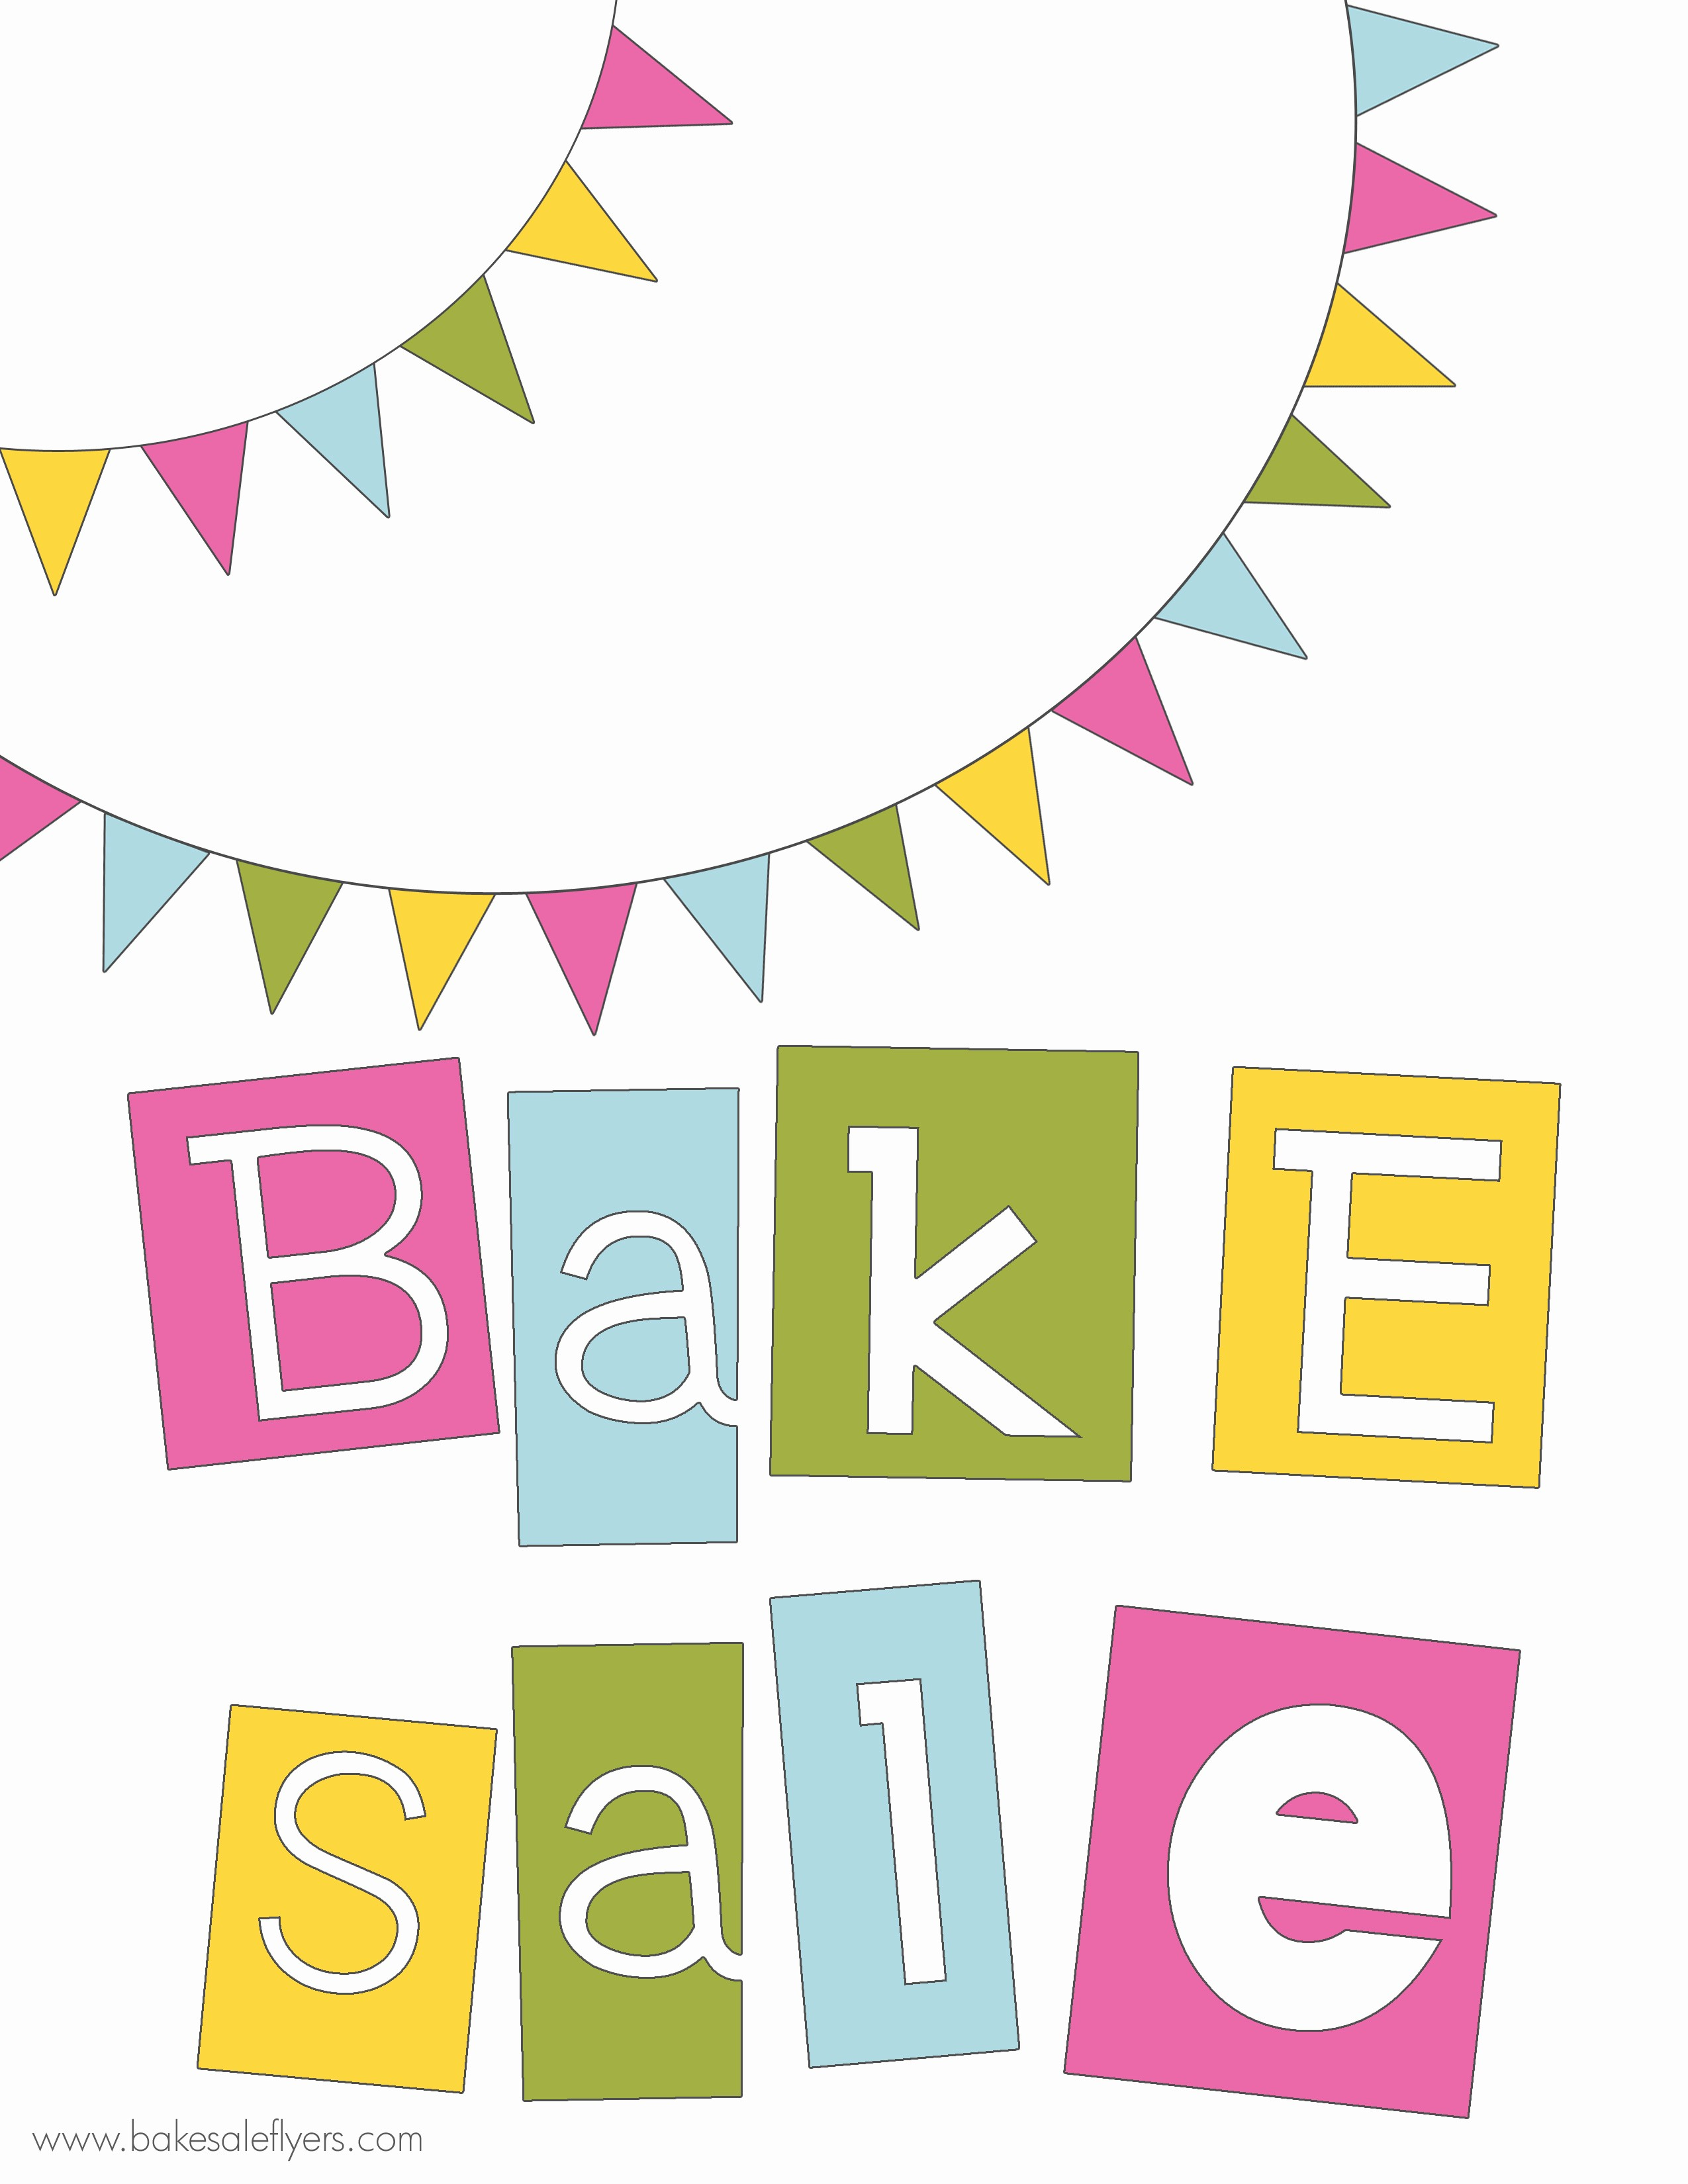 Bake Sale Flyer Template Free Luxury Free Printable Banner and Bake Sale Flyer